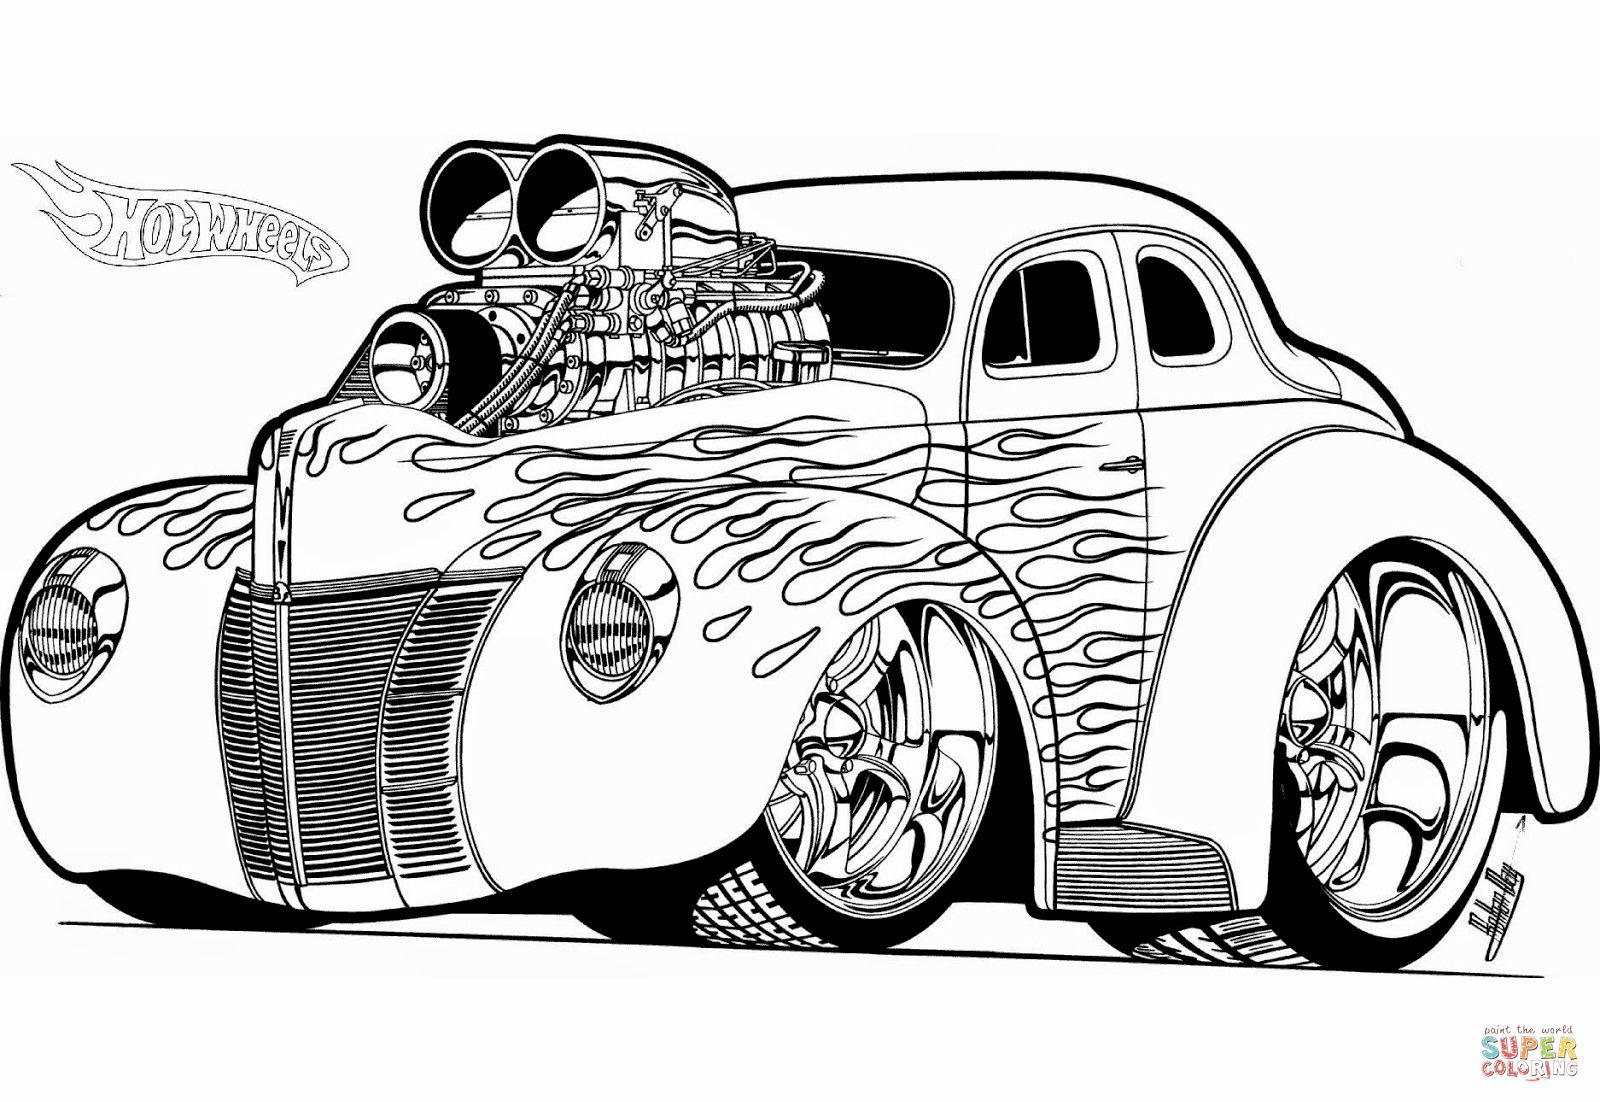 coloring hot rod hot rod coloring pages to print download free coloring hot coloring rod